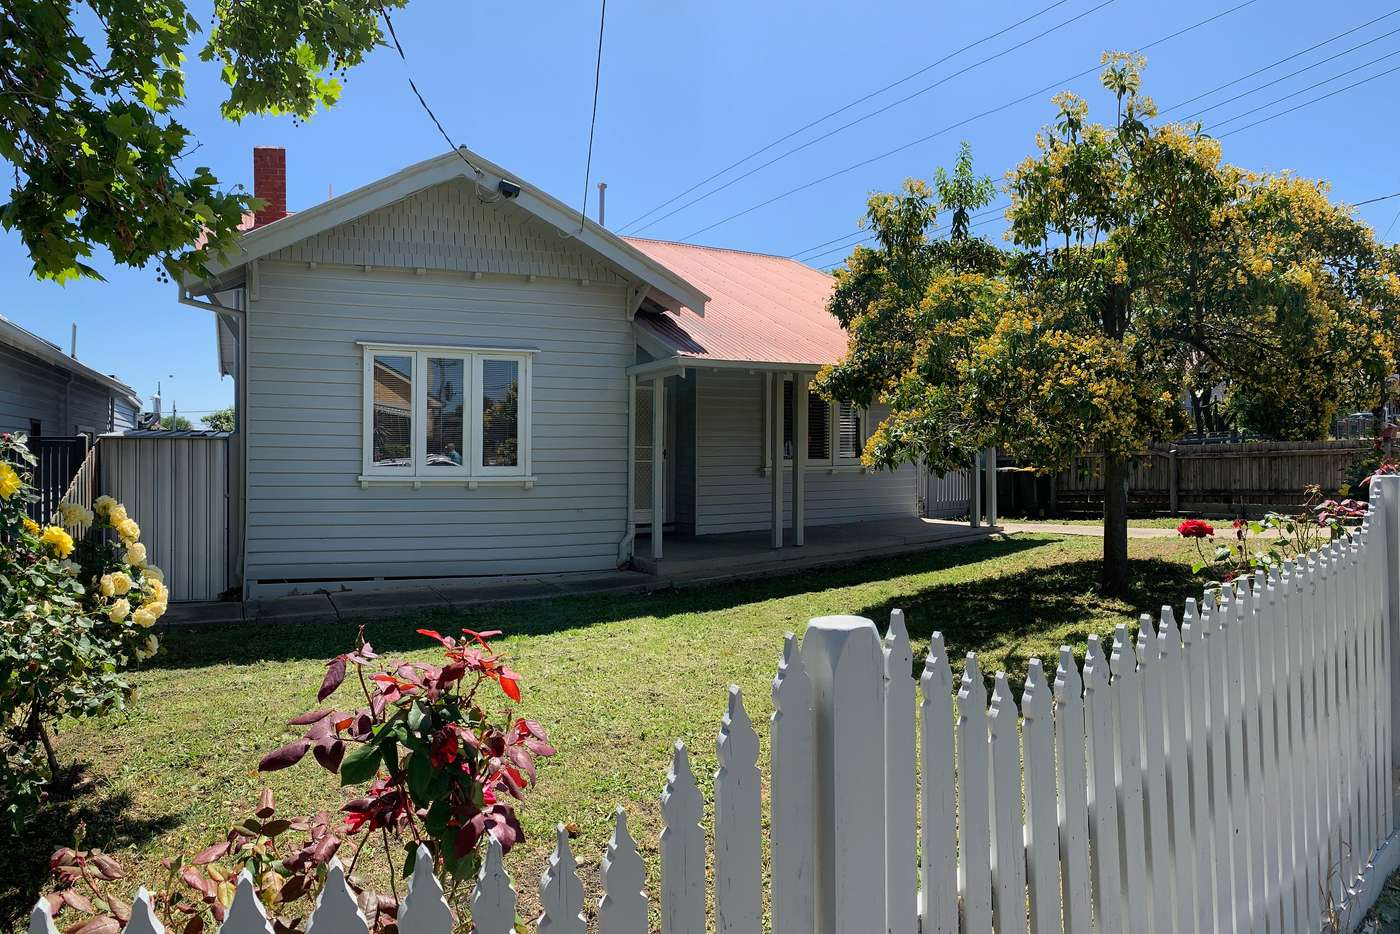 Main view of Homely house listing, 51 Devon Avenue, Coburg VIC 3058